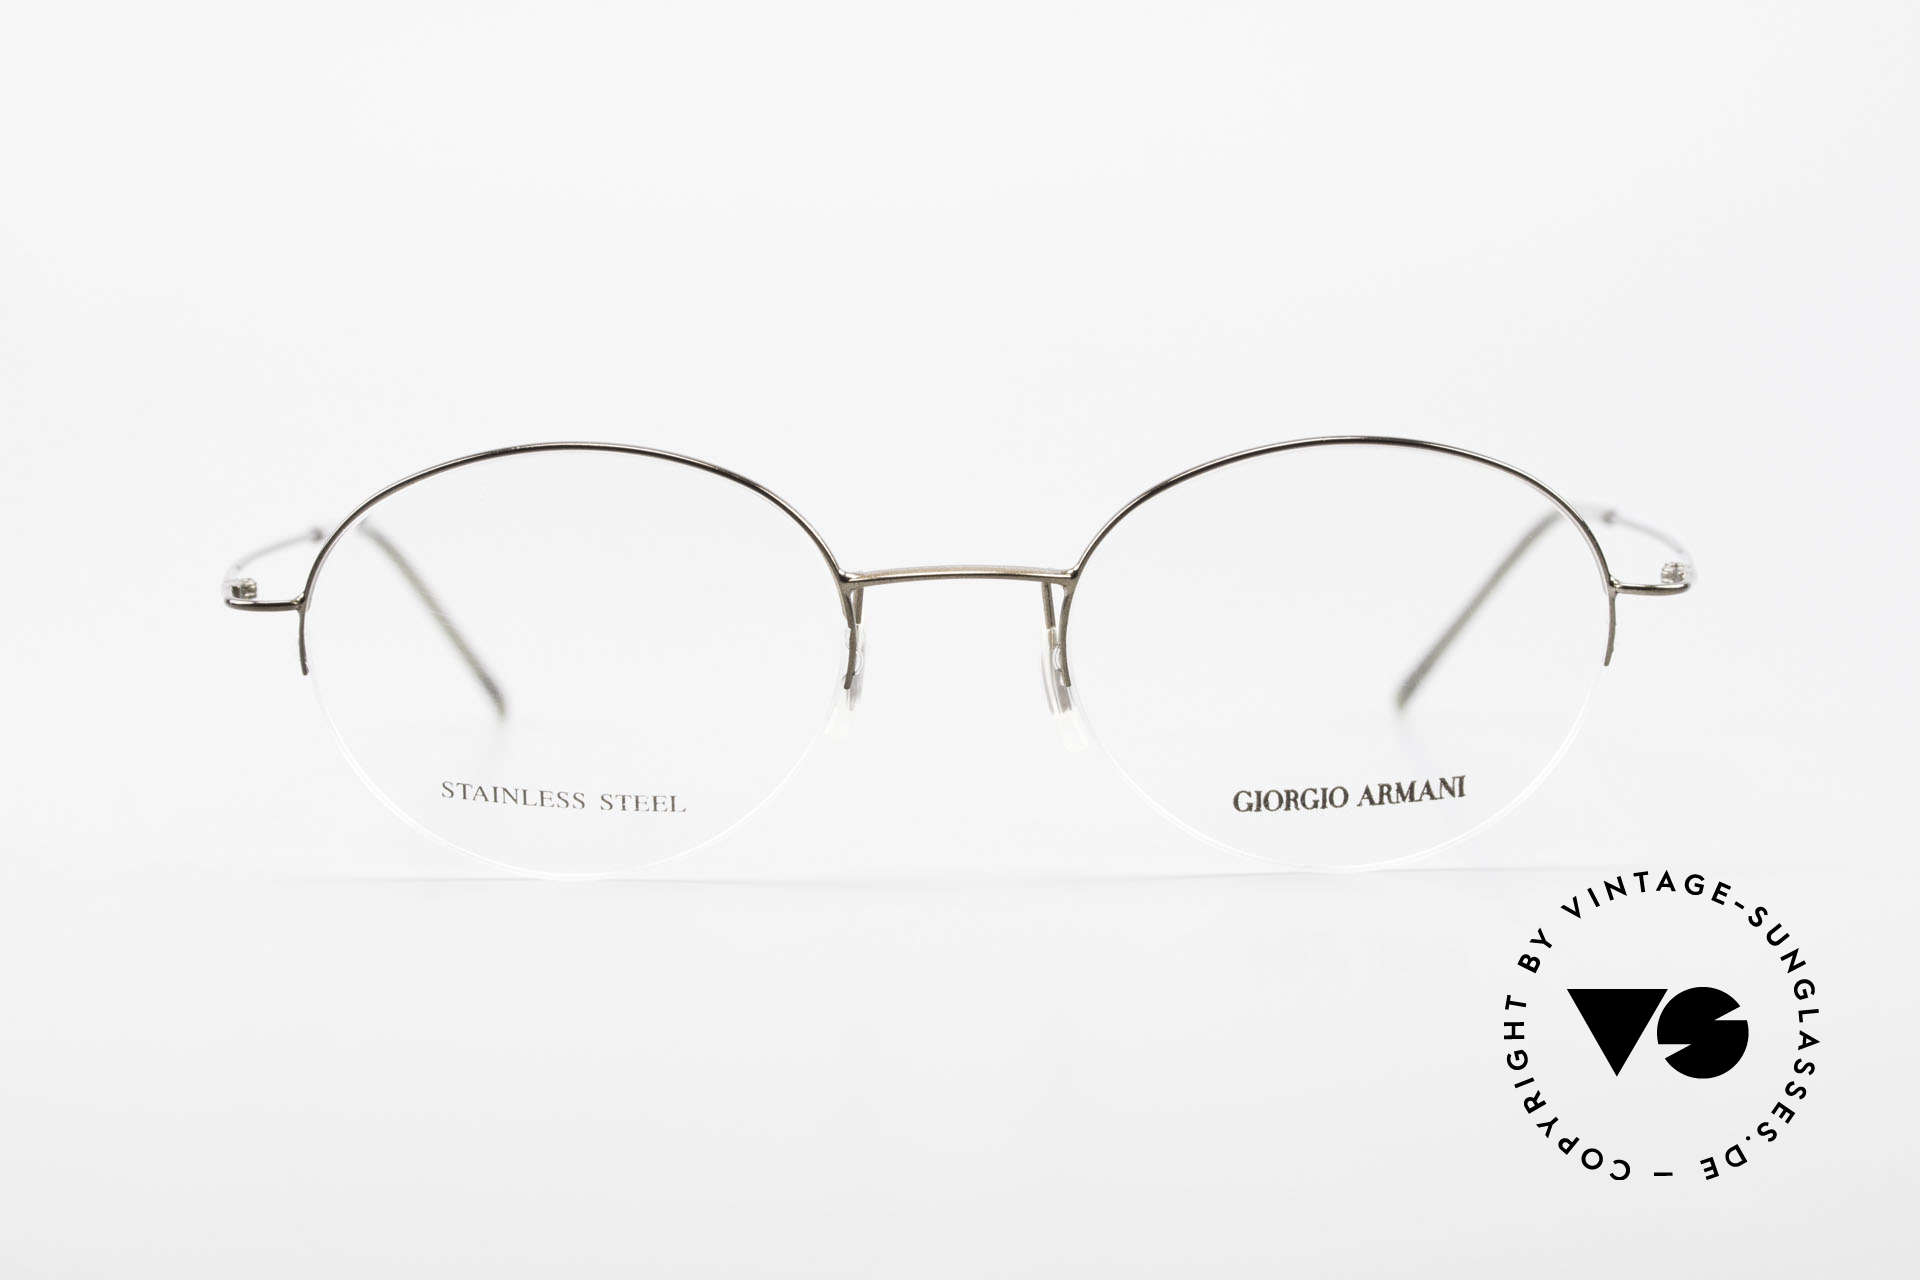 Giorgio Armani 27N Small Round Eyeglasses Nylor, plain and puristic 'wire glasses' in a SMALL SIZE!, Made for Men and Women